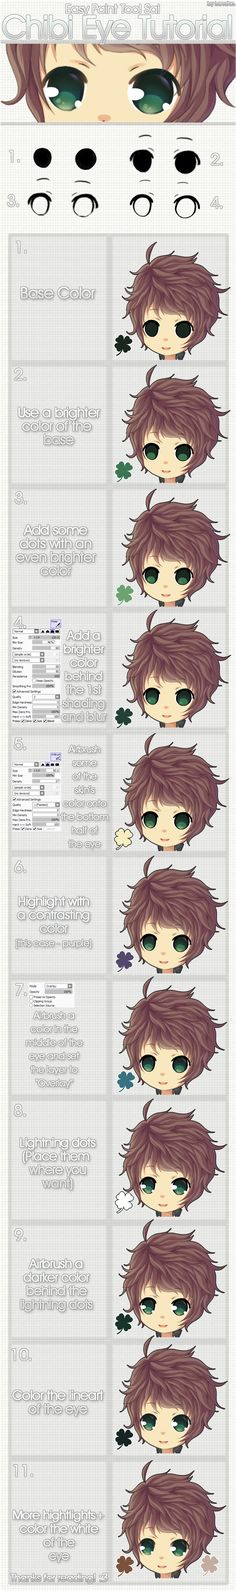 Chibi Eye Tutorial~ by Lanahx3.deviantart.com on @deviantART This gives me some coloring ideas too...